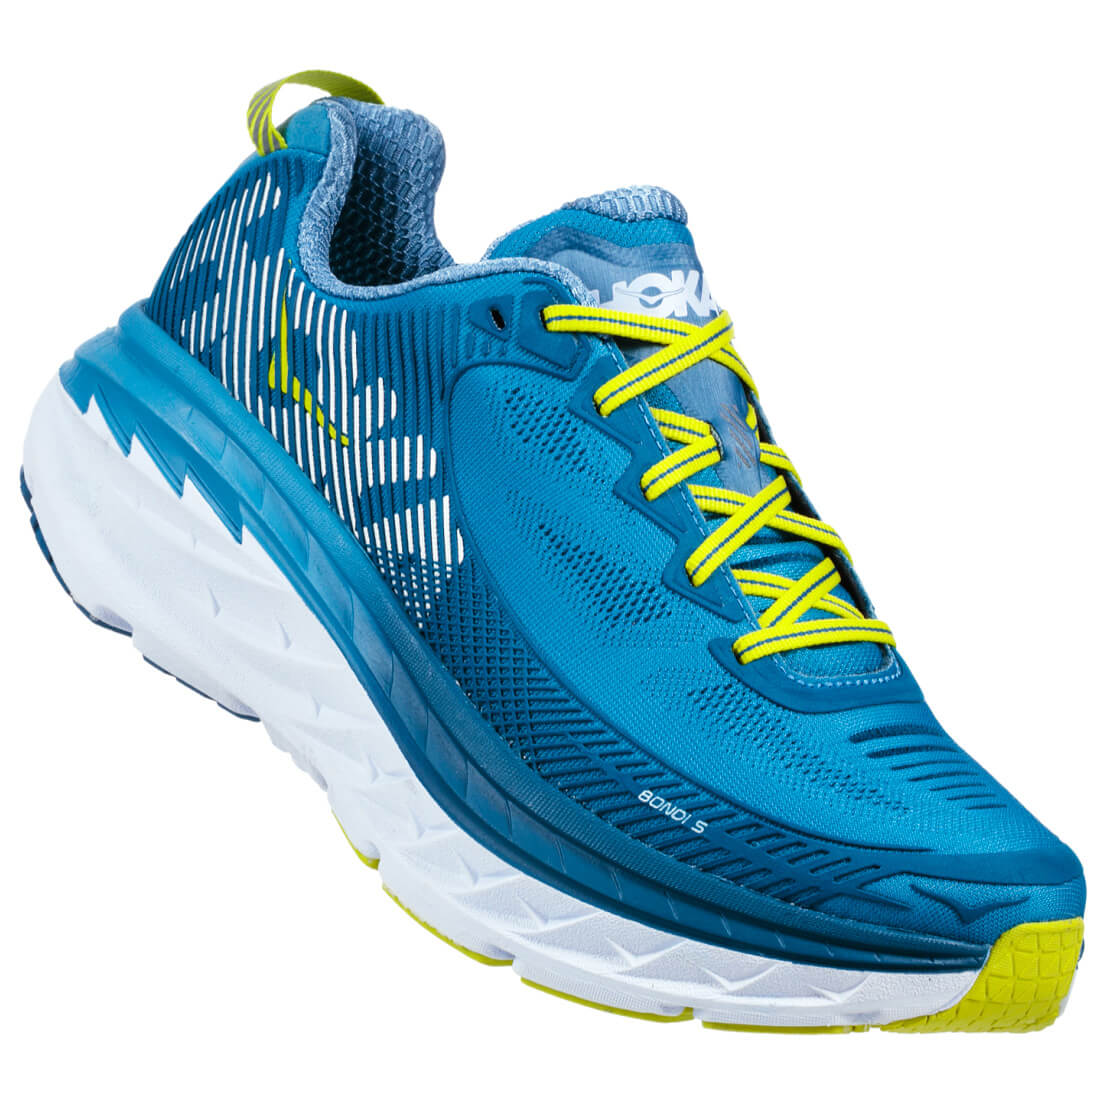 hoka one one bondi 5 running shoes mens free uk